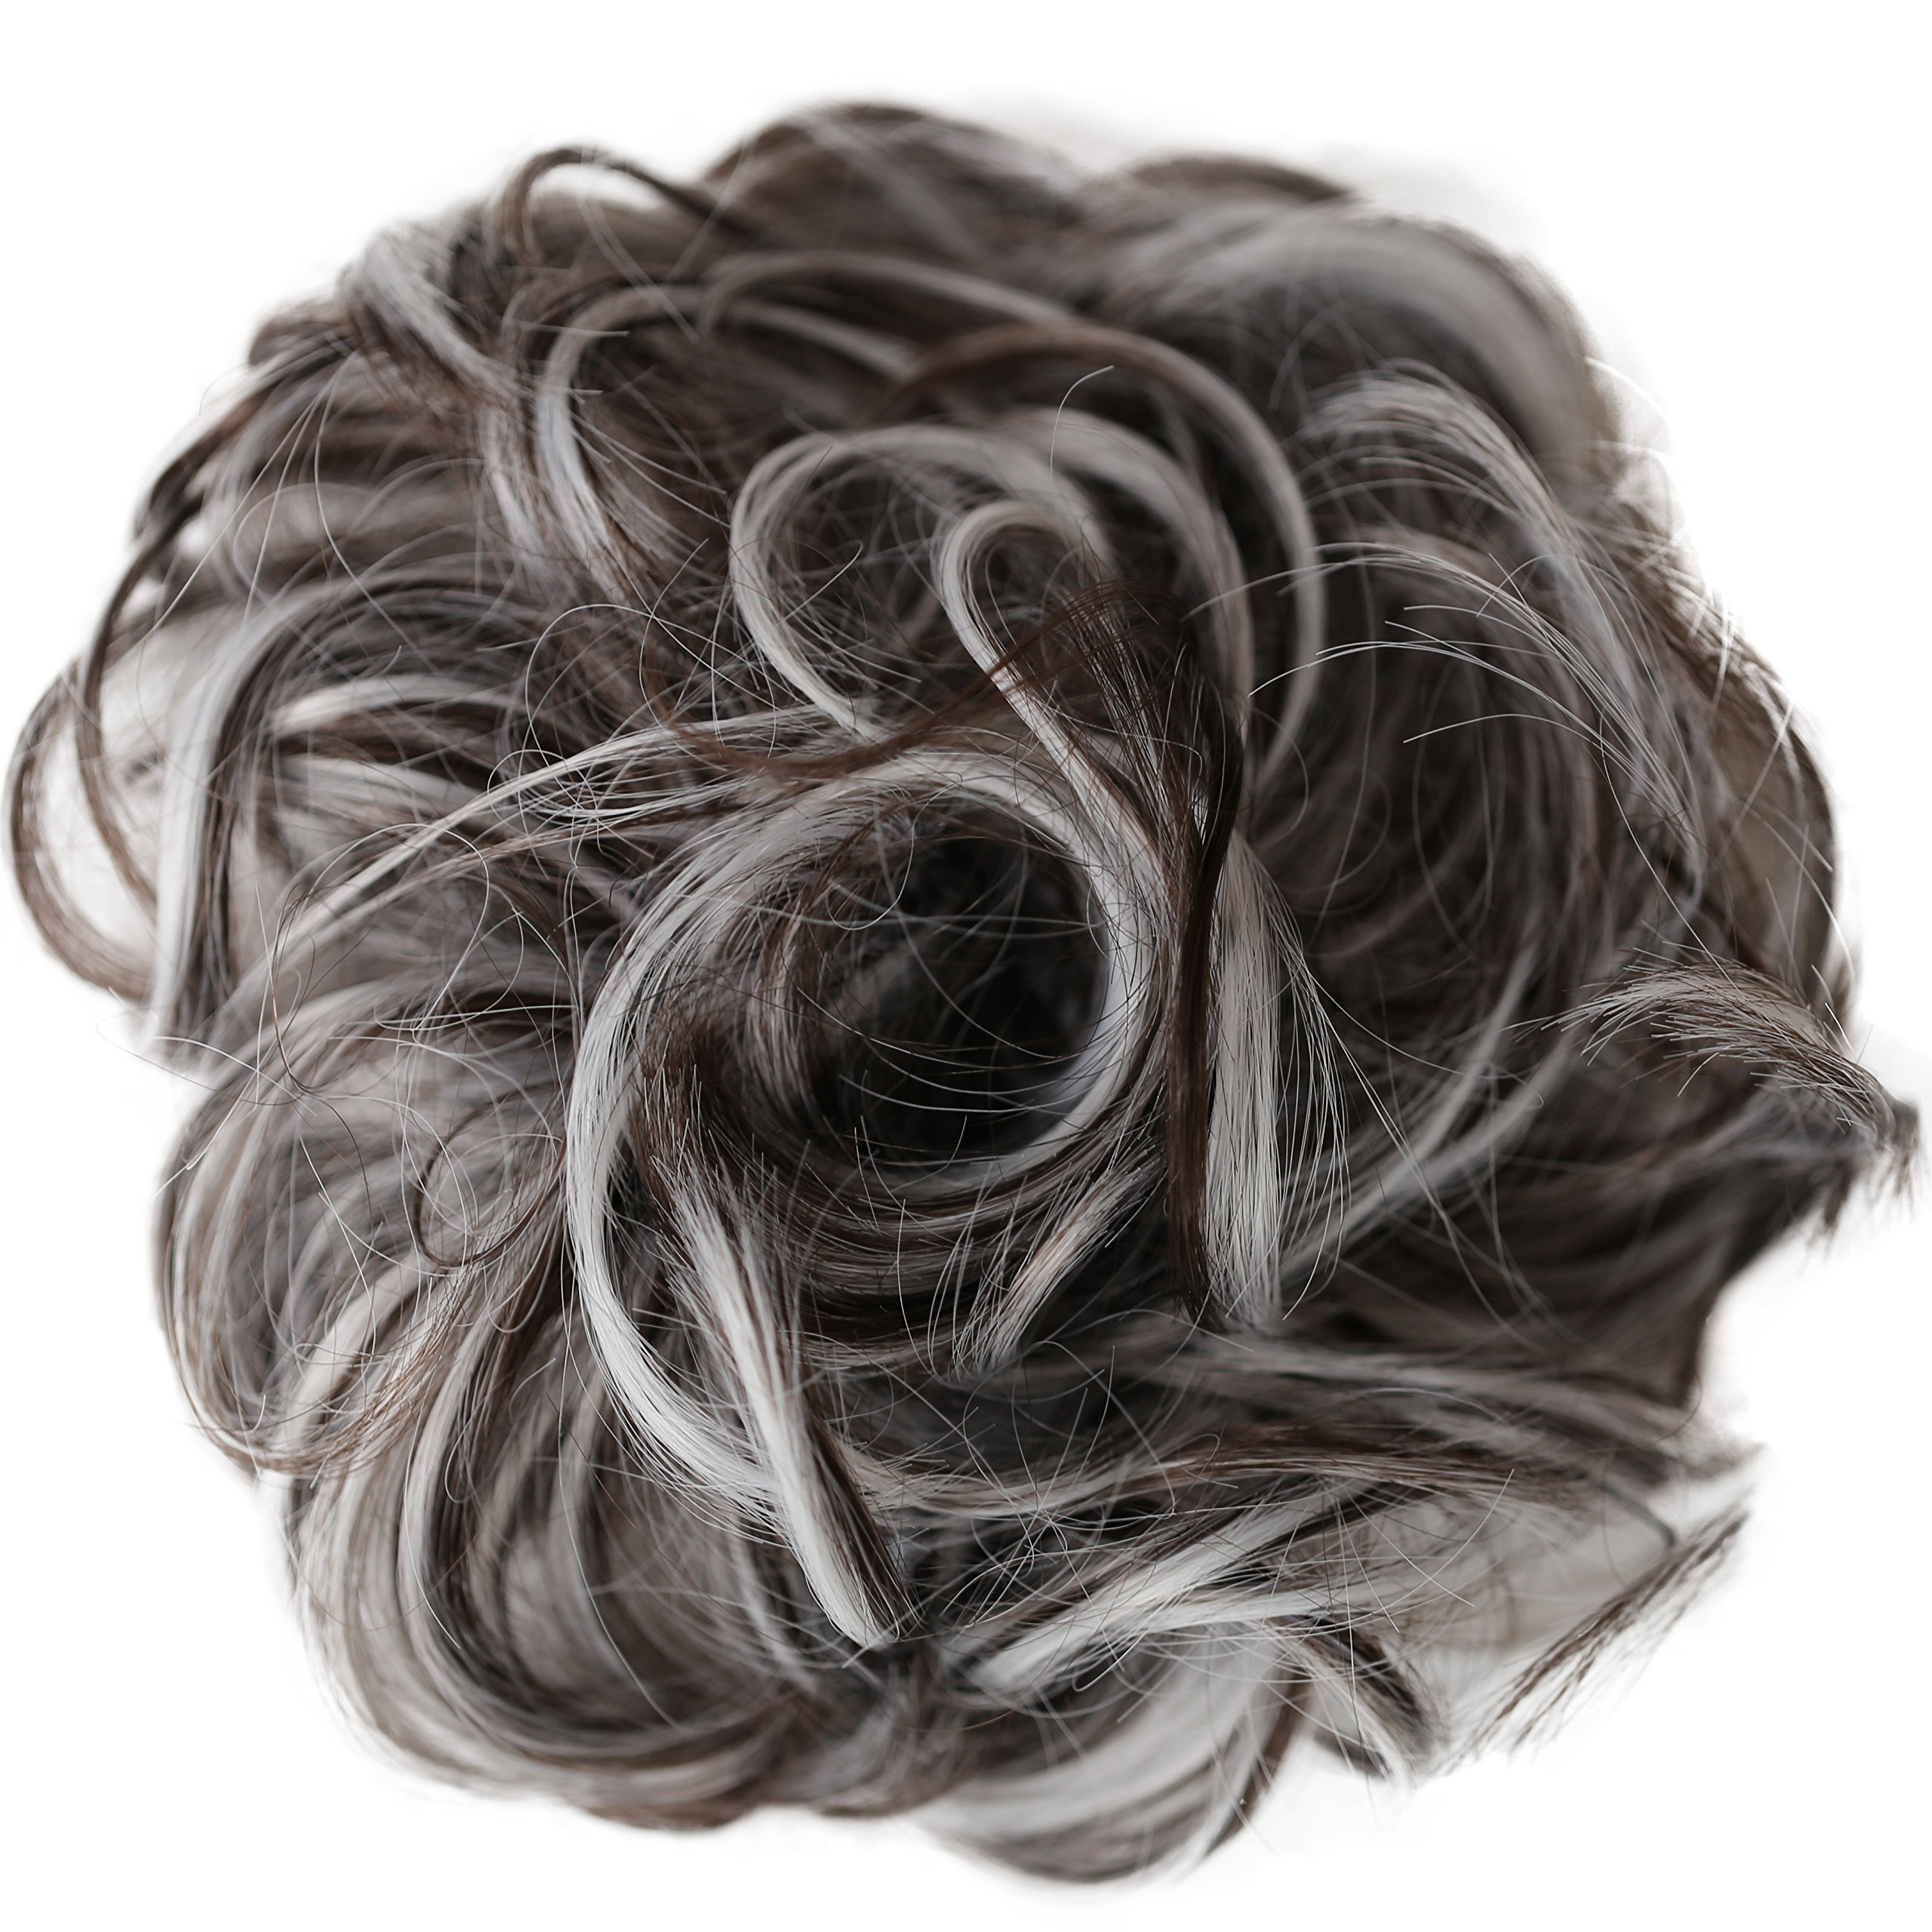 PRETTYSHOP Hairpiece Hair Rubber Scrunchie Scrunchy Updos VOLUMINOUS Curly Messy Bun brown gray mix # 10H1001B G25E